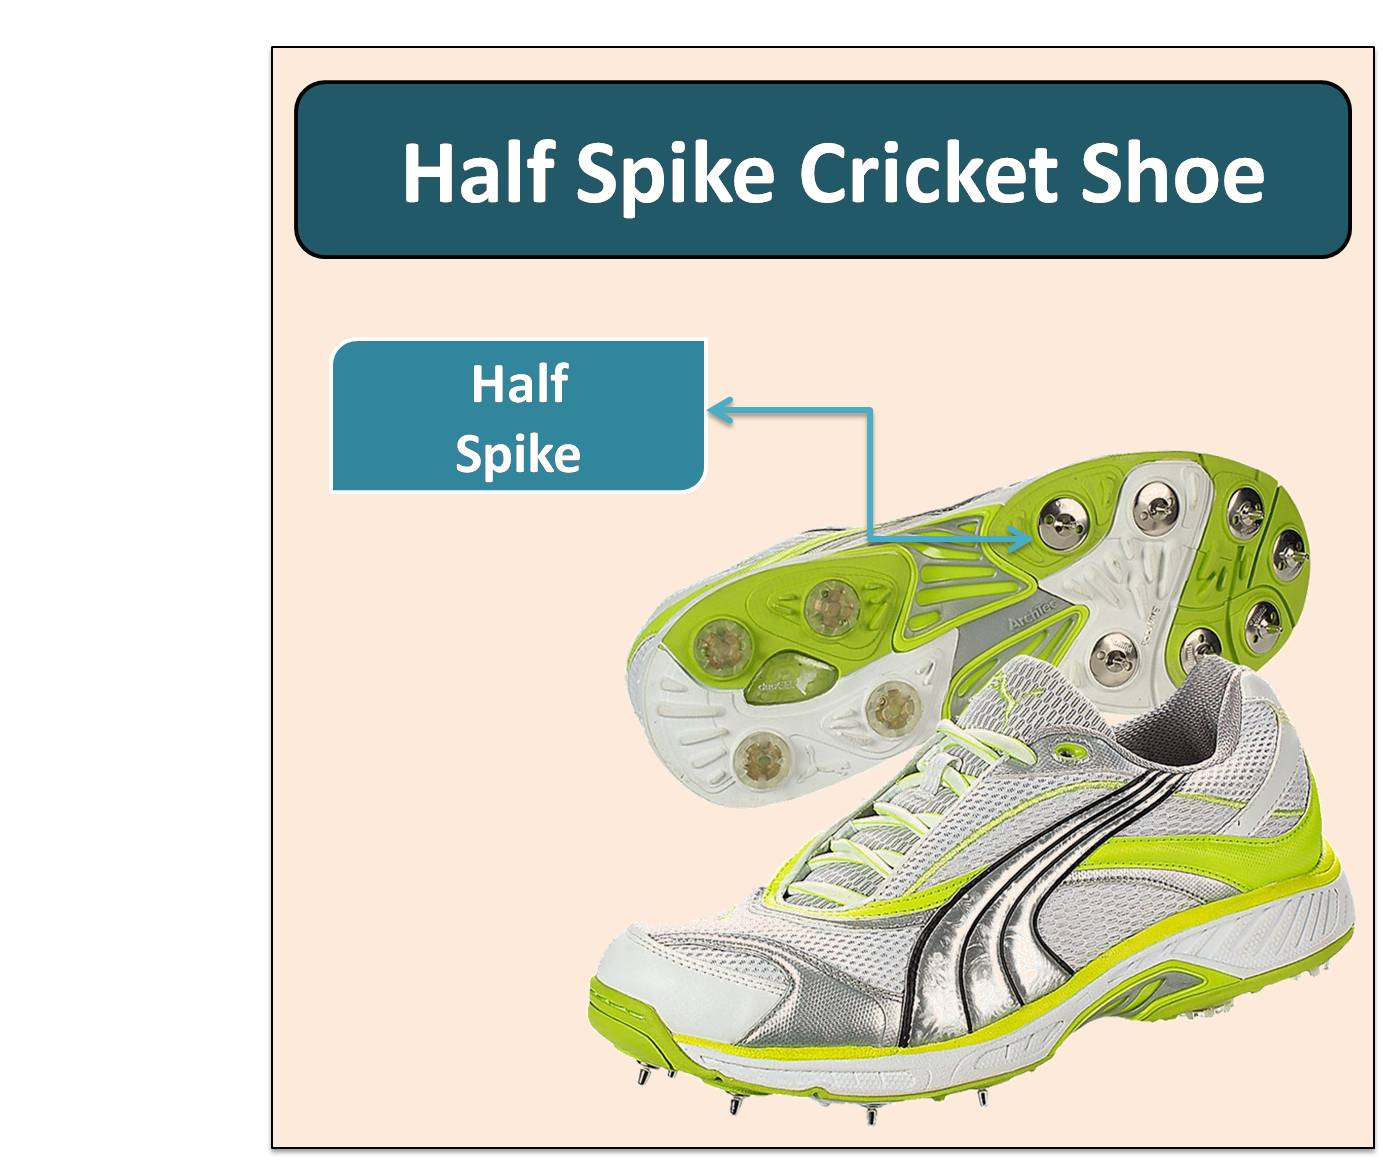 Half Spike Cricket Shoe